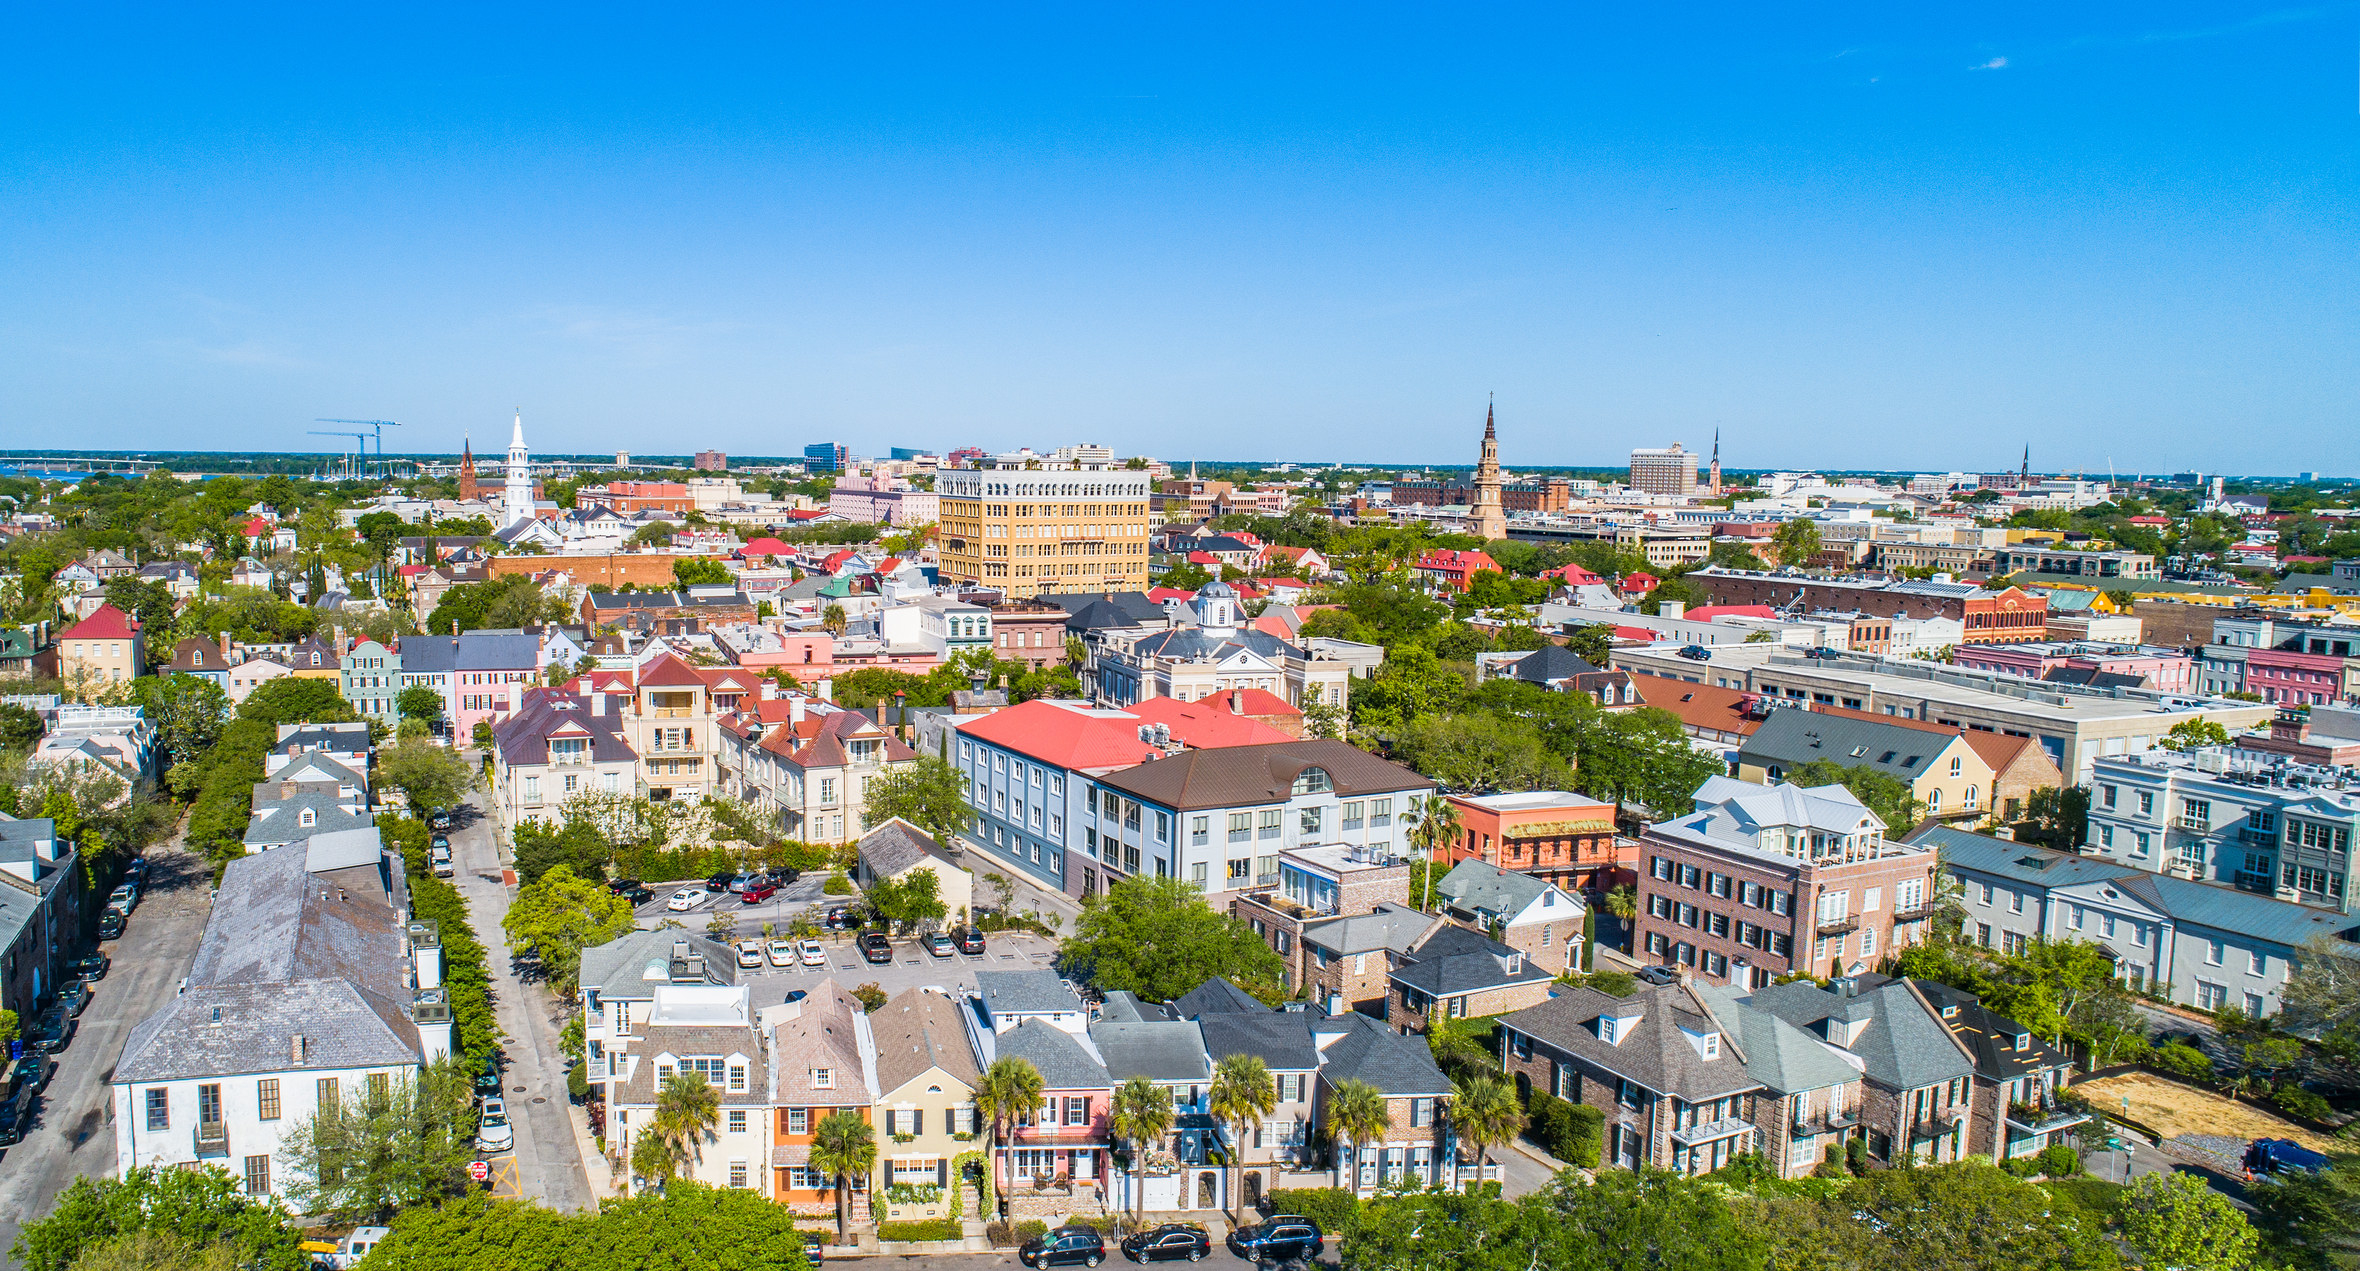 Charleston, South Carolina neighborhood